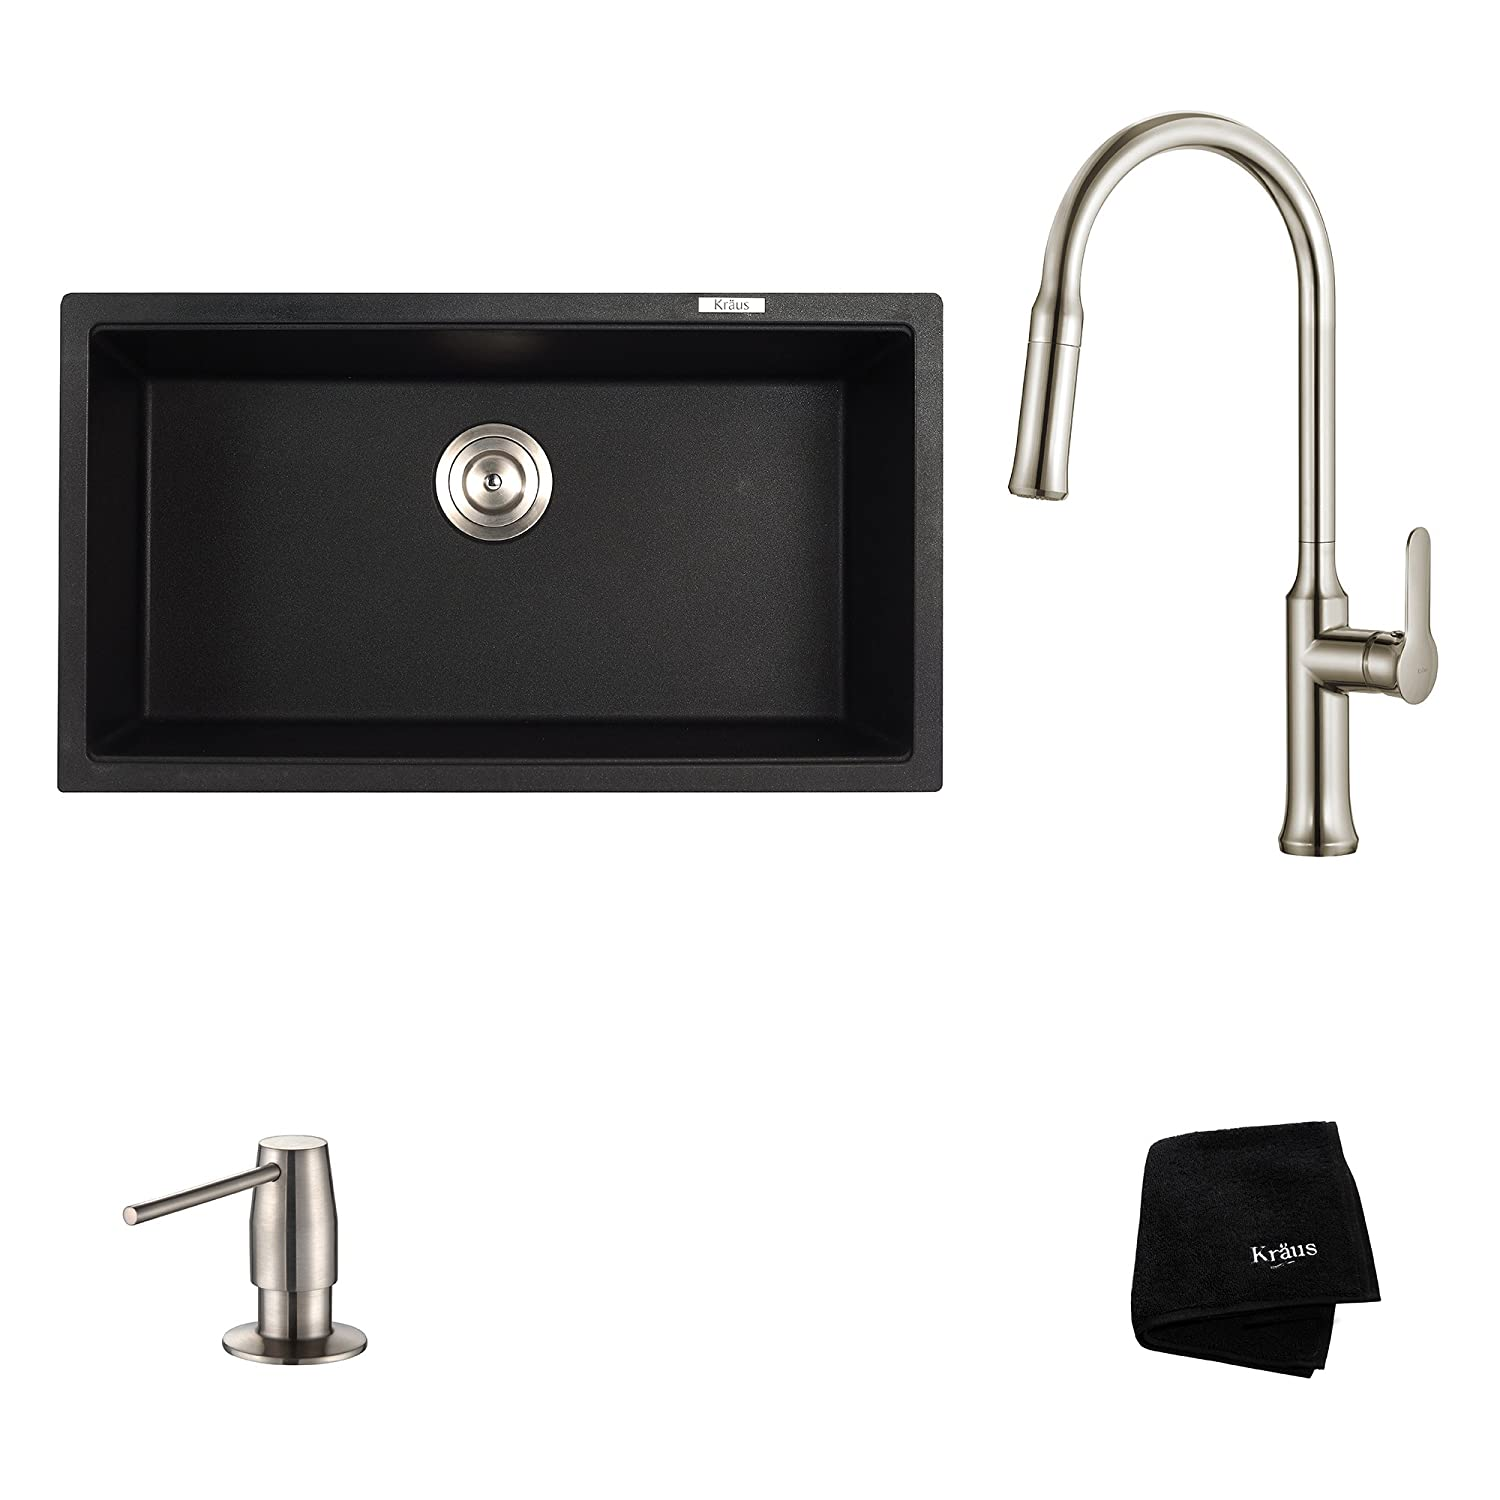 Kraus KGU-413B-1630-42SS Modern Undermount Single Bowl Sink with Pull Down Faucet SD Stainless Steel 31